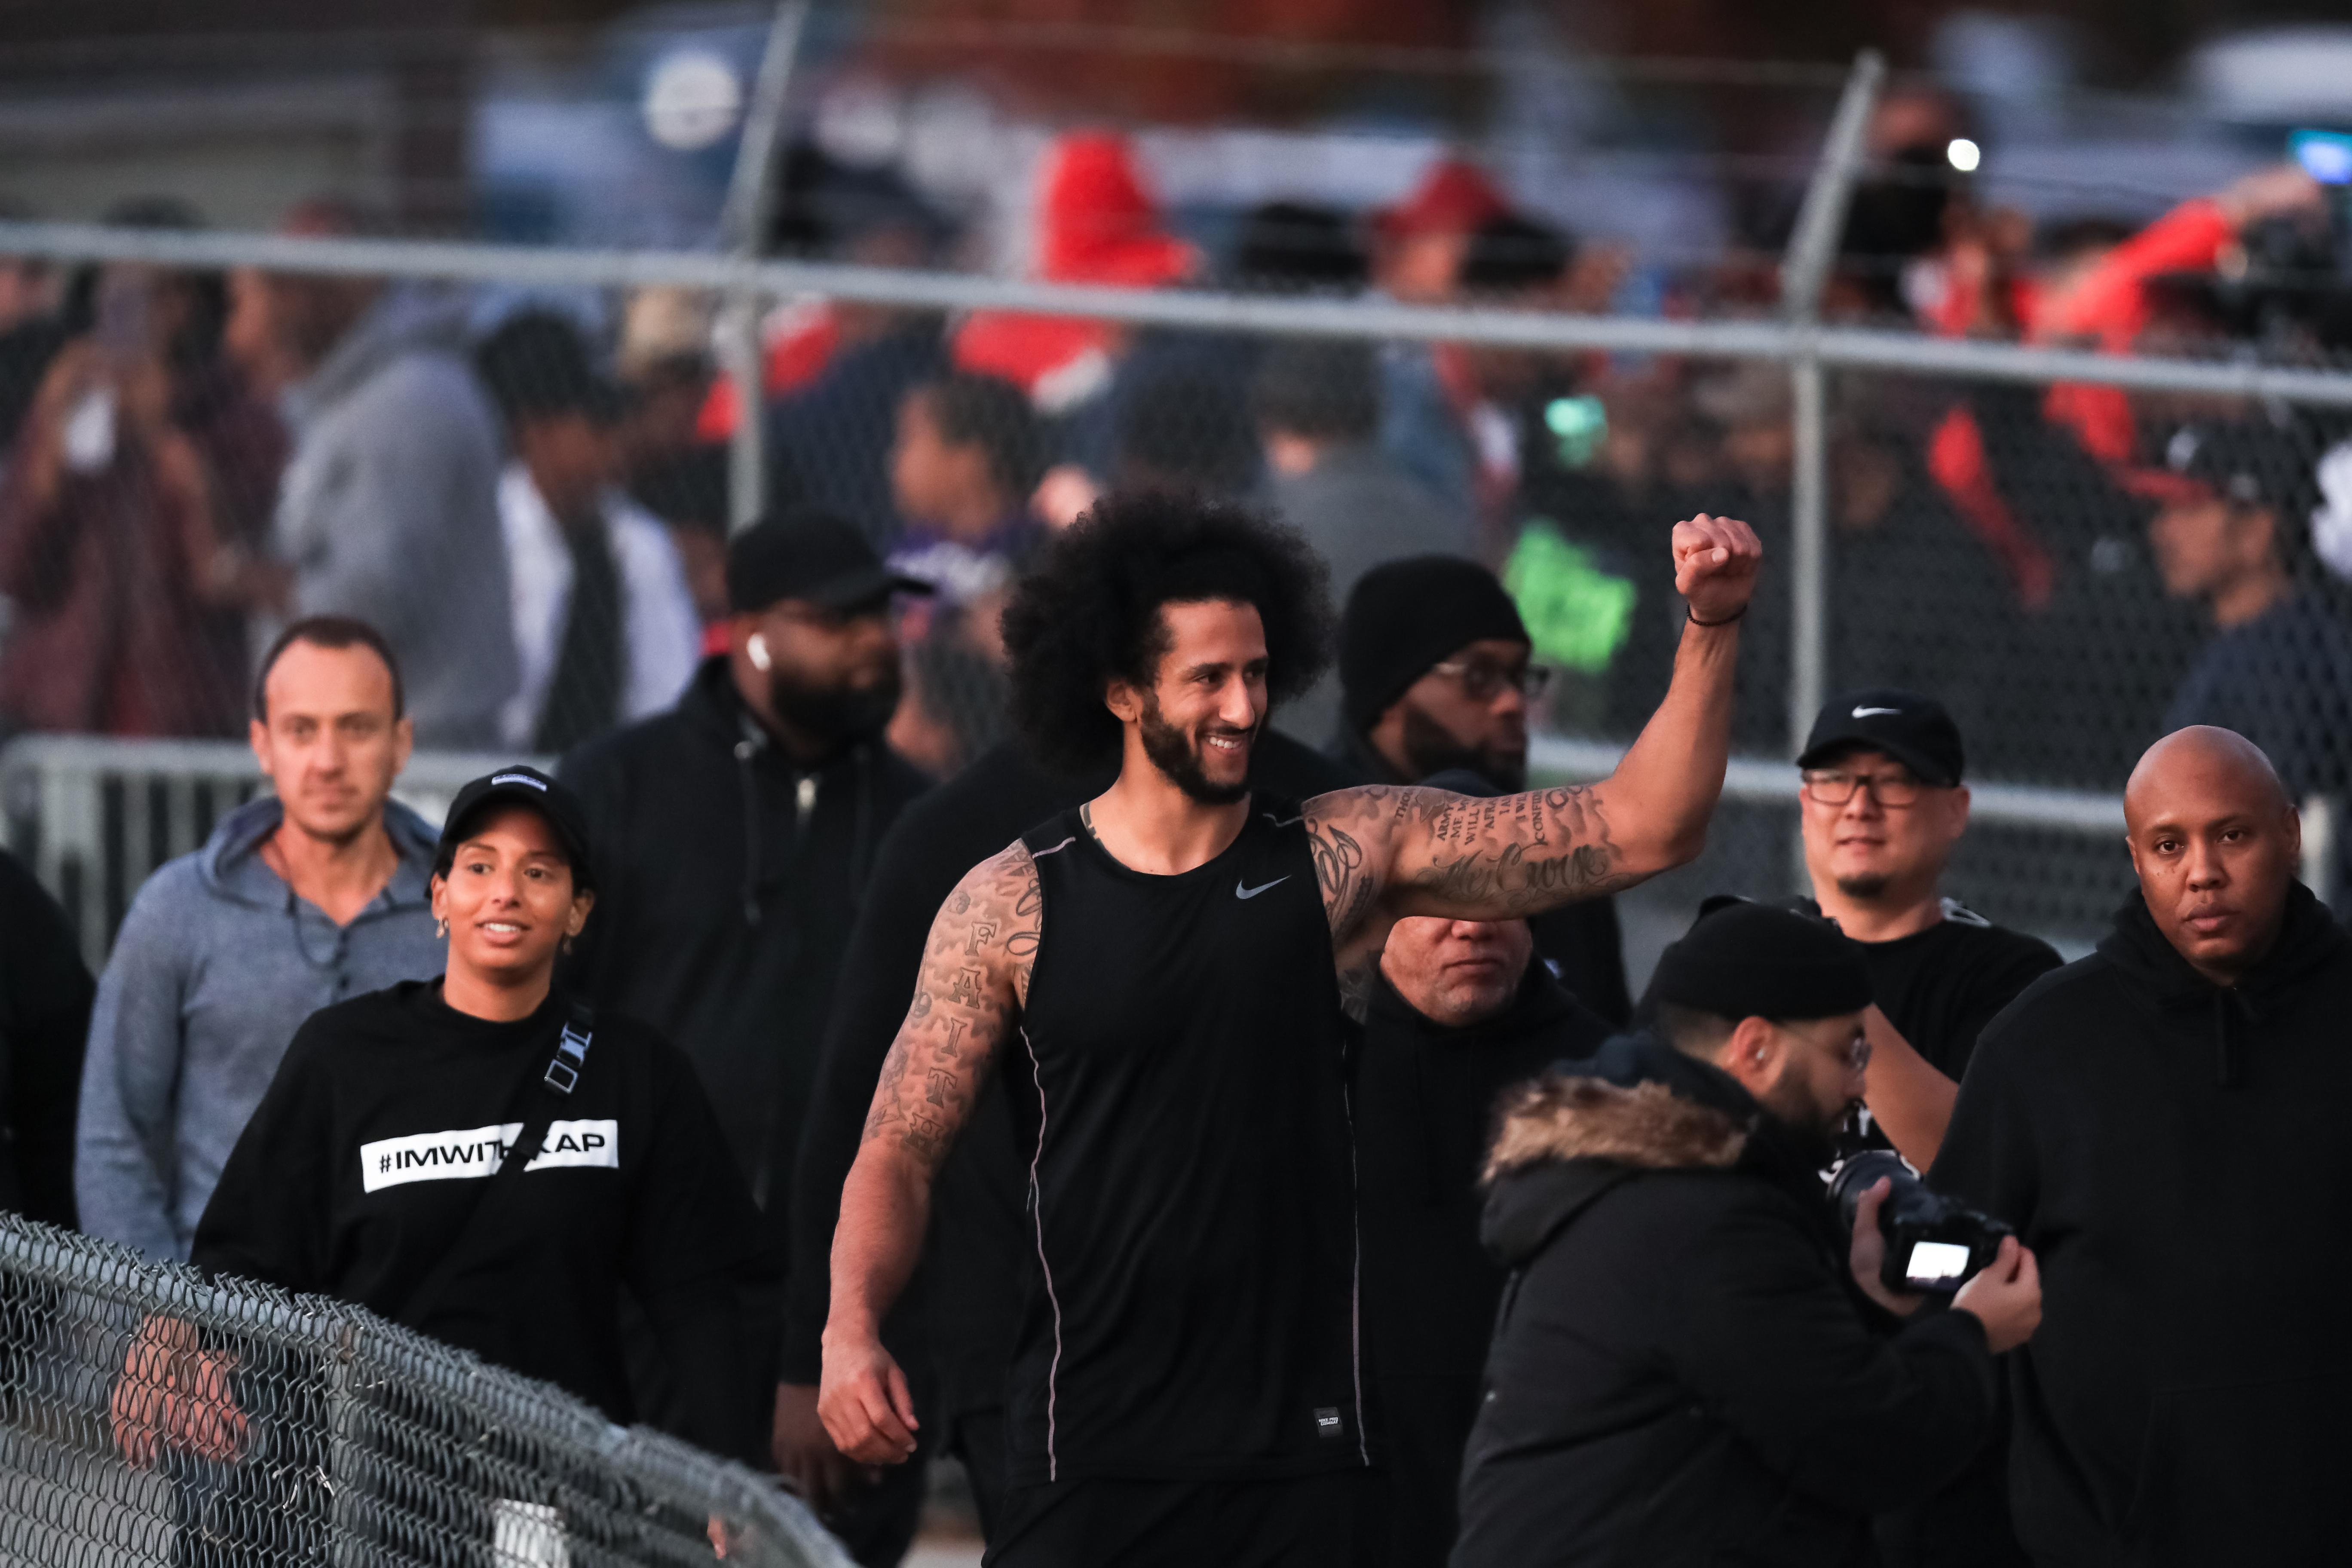 Tom Brady reiterates his hope that Colin Kaepernick gets another chance in NFL - Yahoo Sports